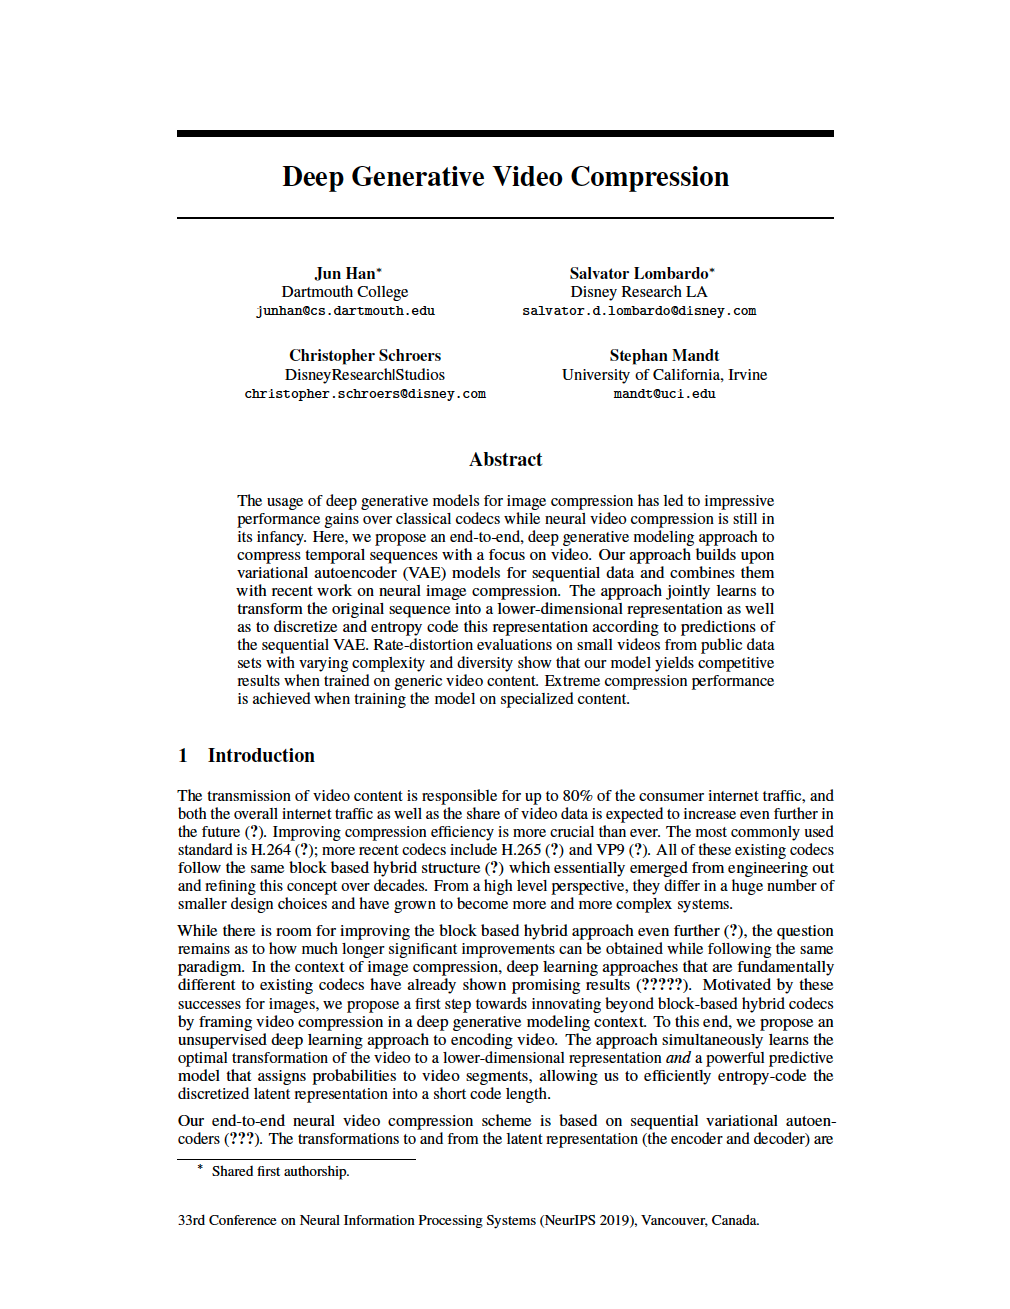 Deep Generative Video Compression